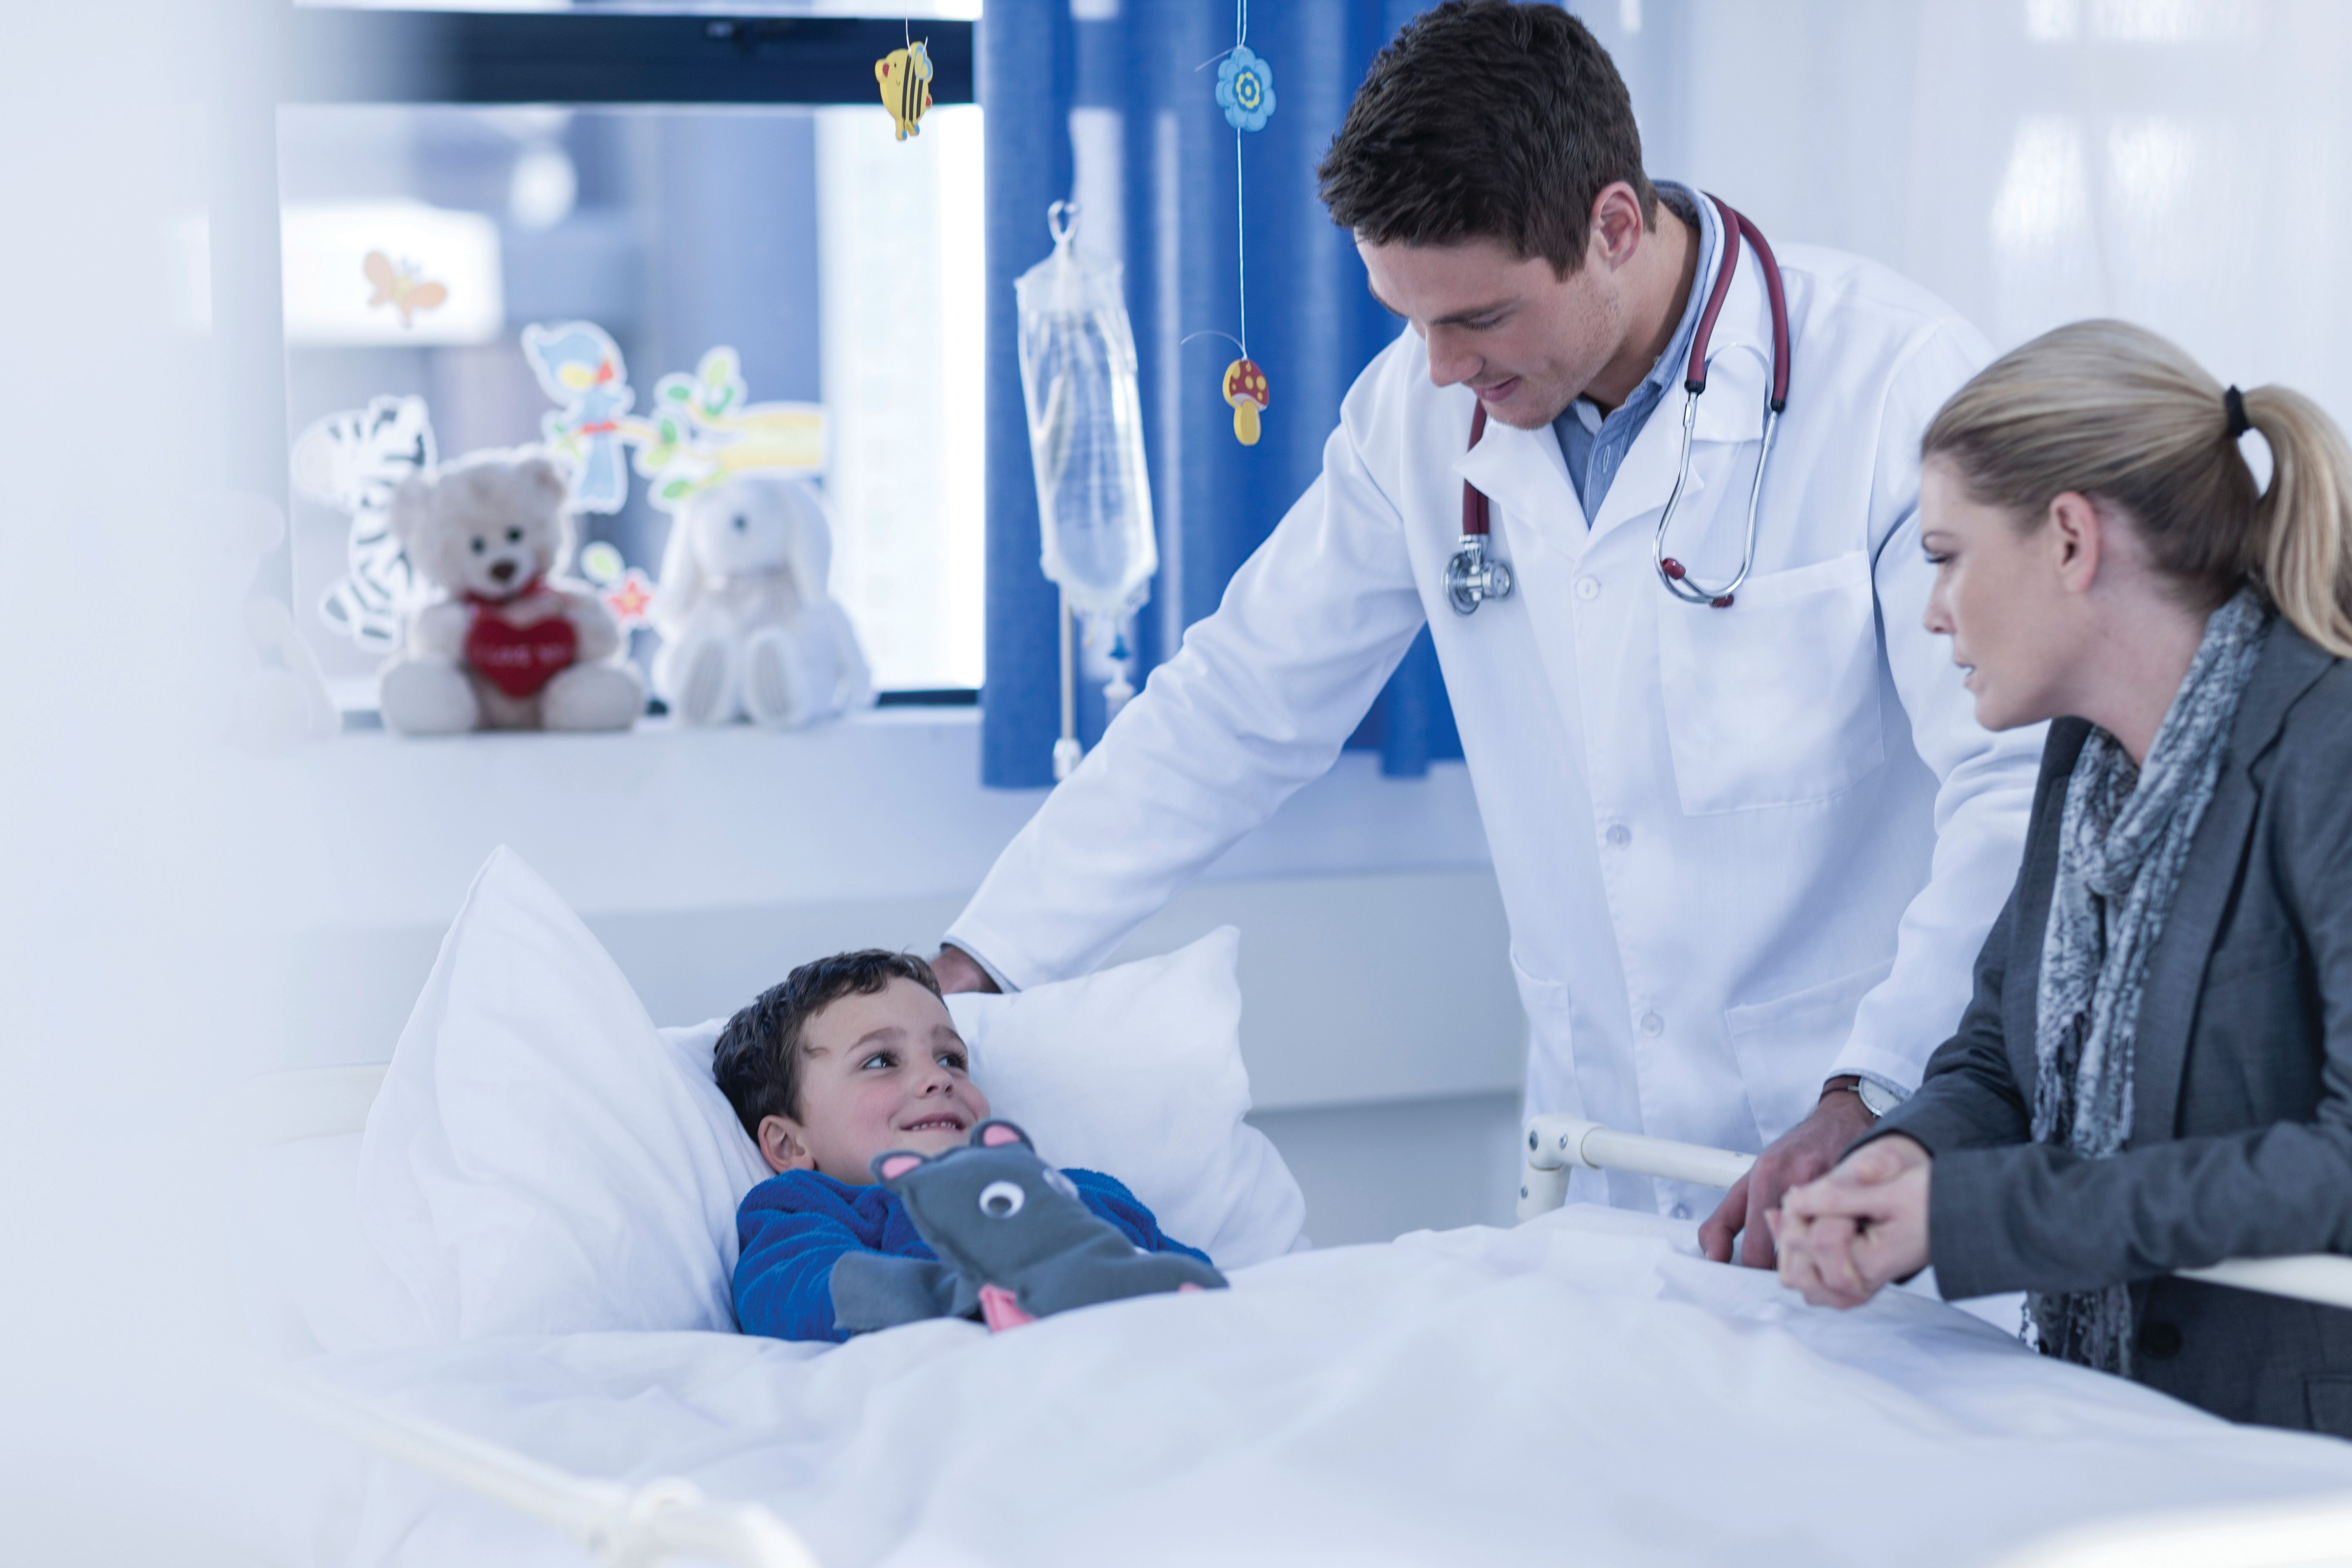 A doctor and mother watch over a boy in a hospital bed.